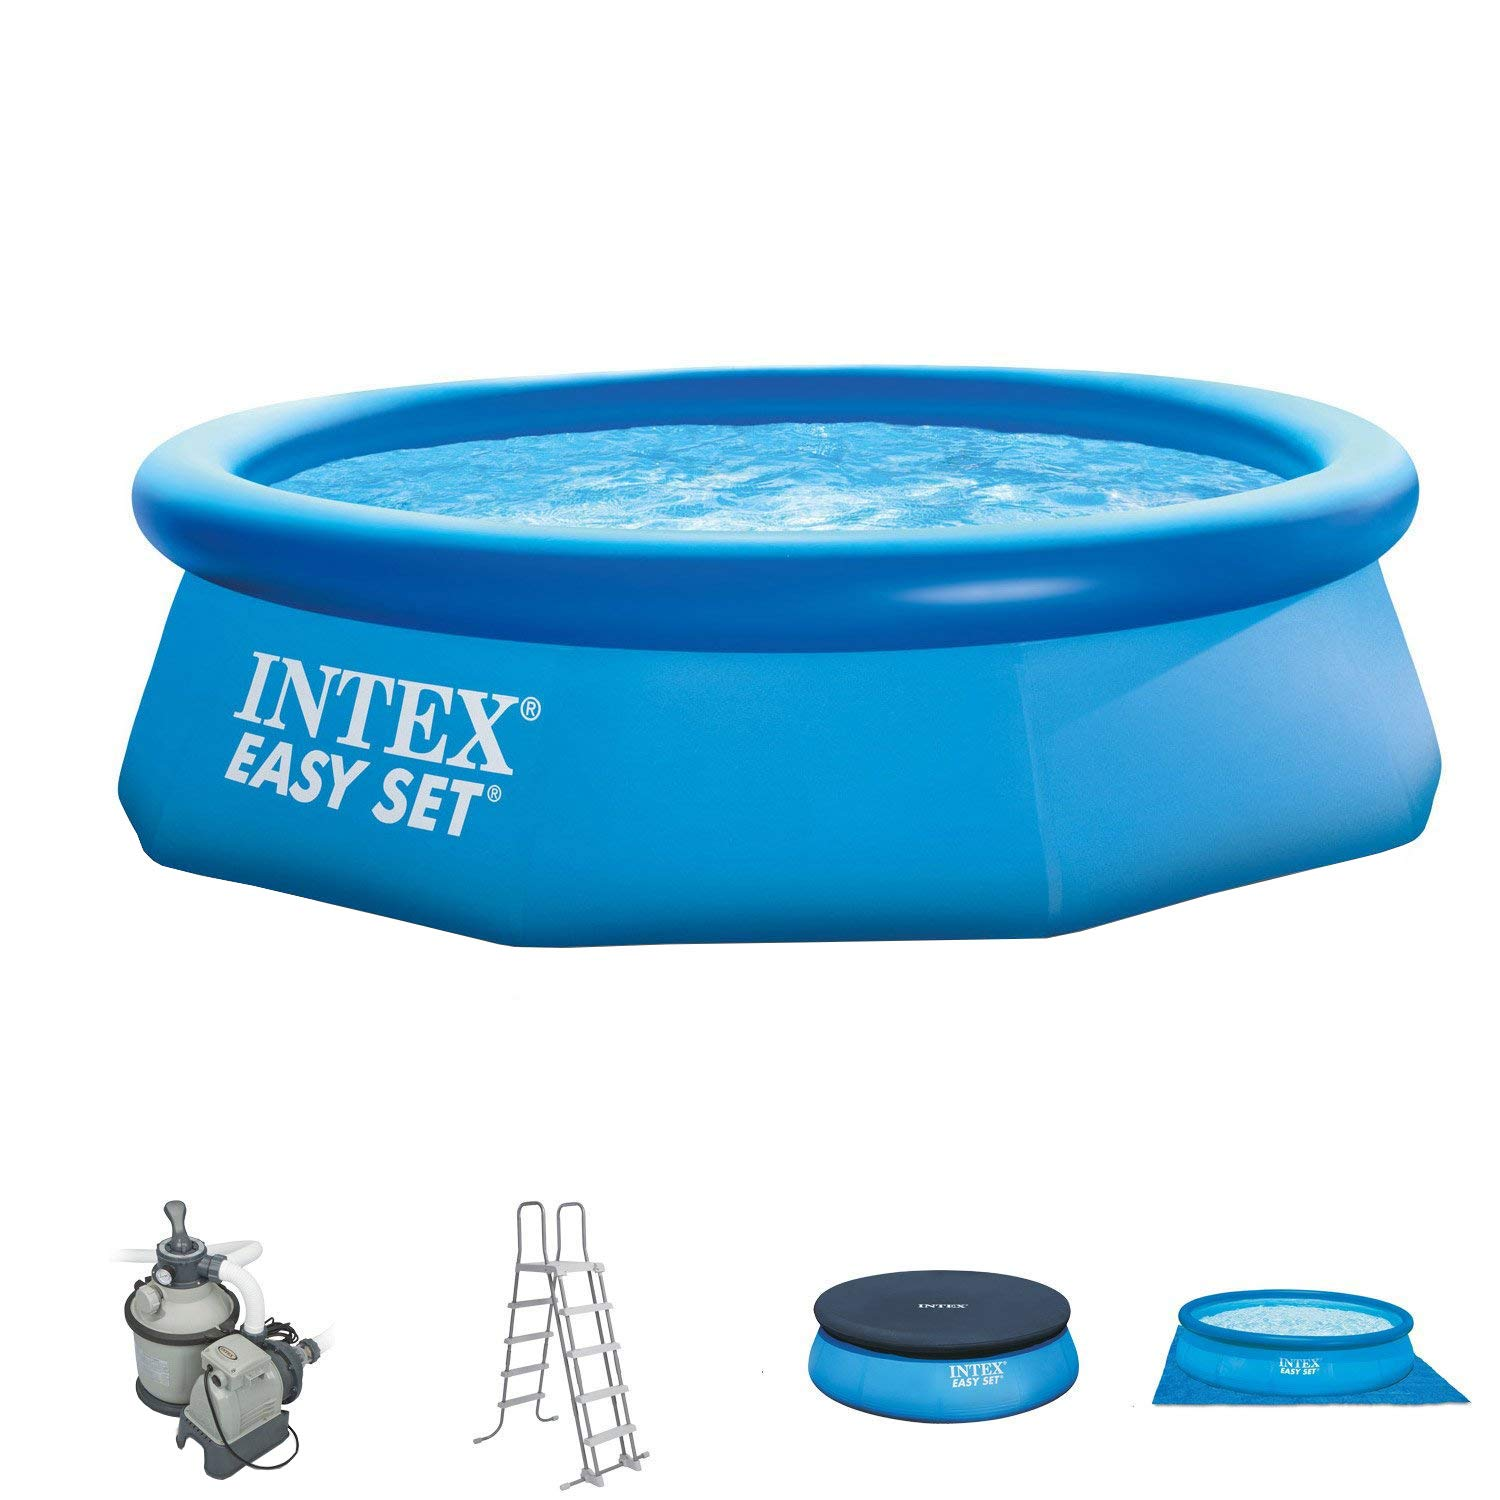 Intex 305 x 91 cm Easy Pool Juego completo incl. Filtro de arena ...